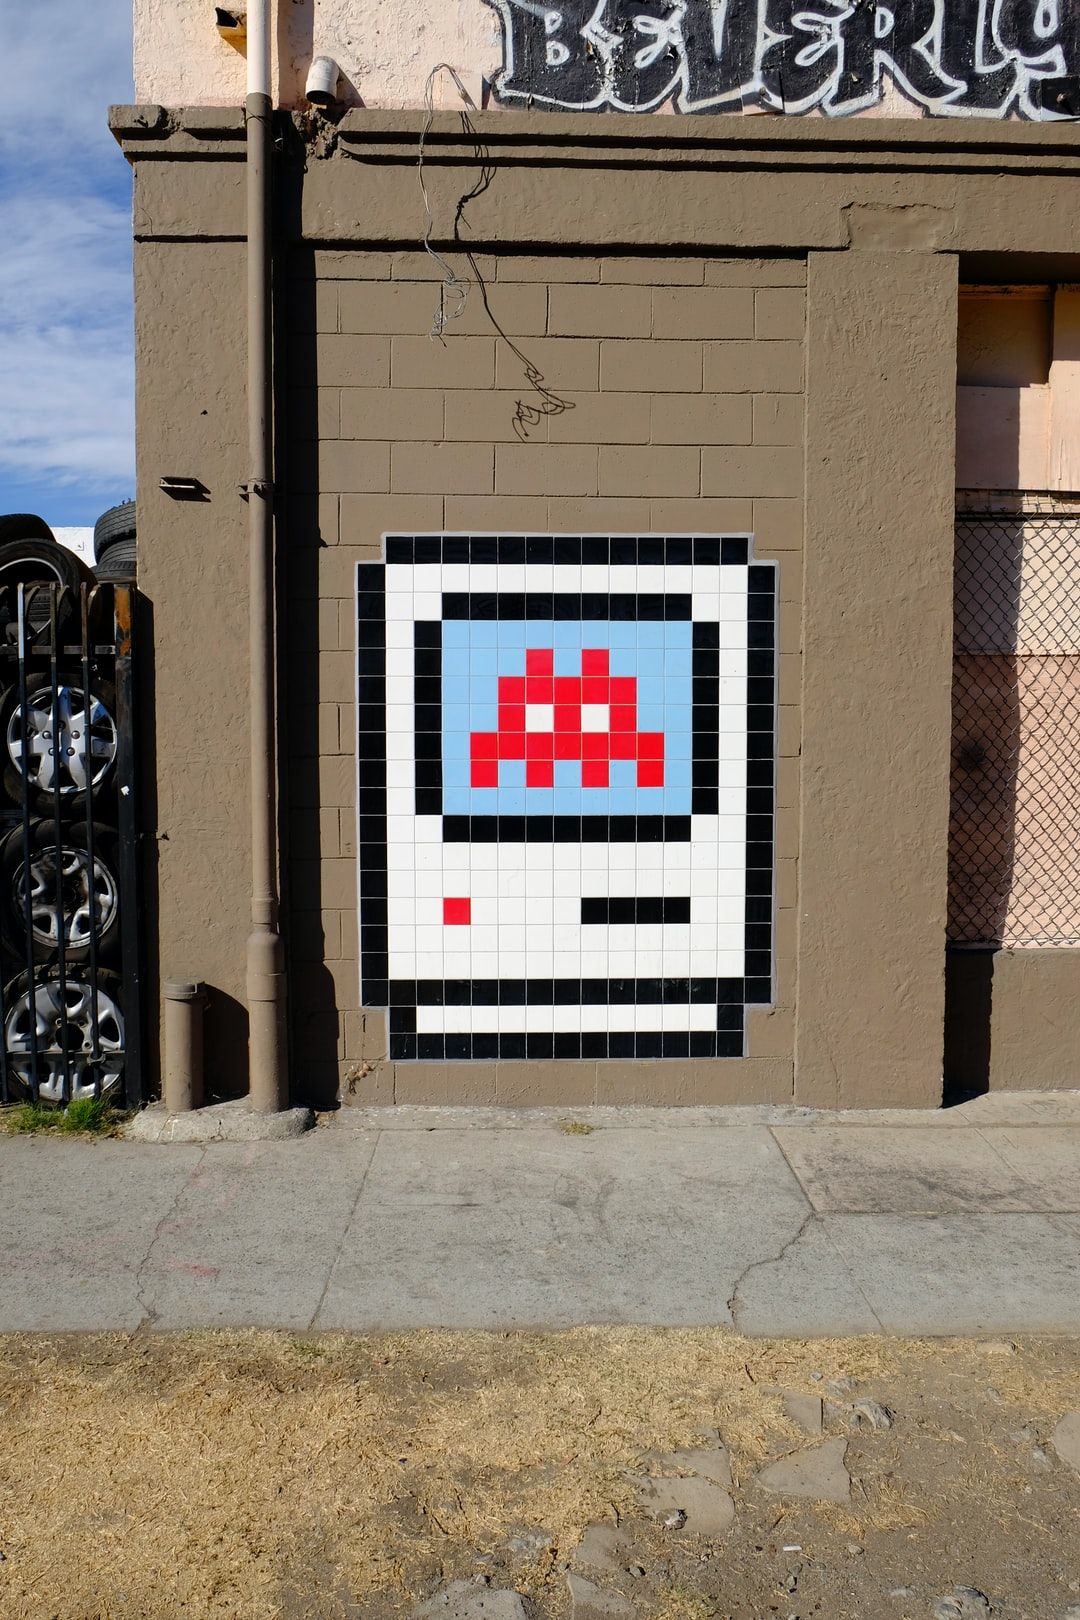 pixelated mural on wall